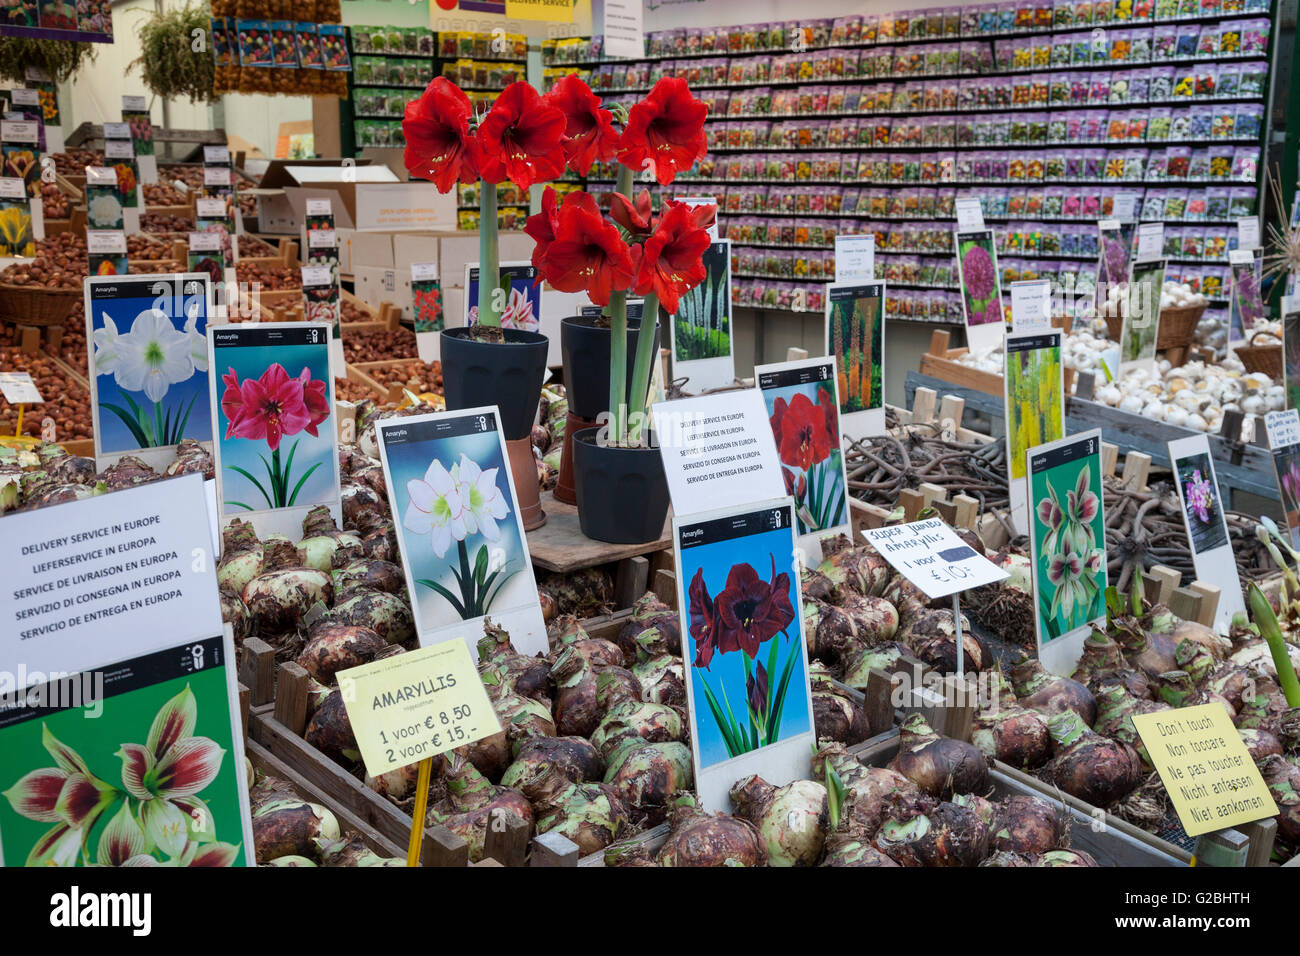 Flower bulbs at the flower market, Amsterdam, North Holland province, Netherlands Stock Photo